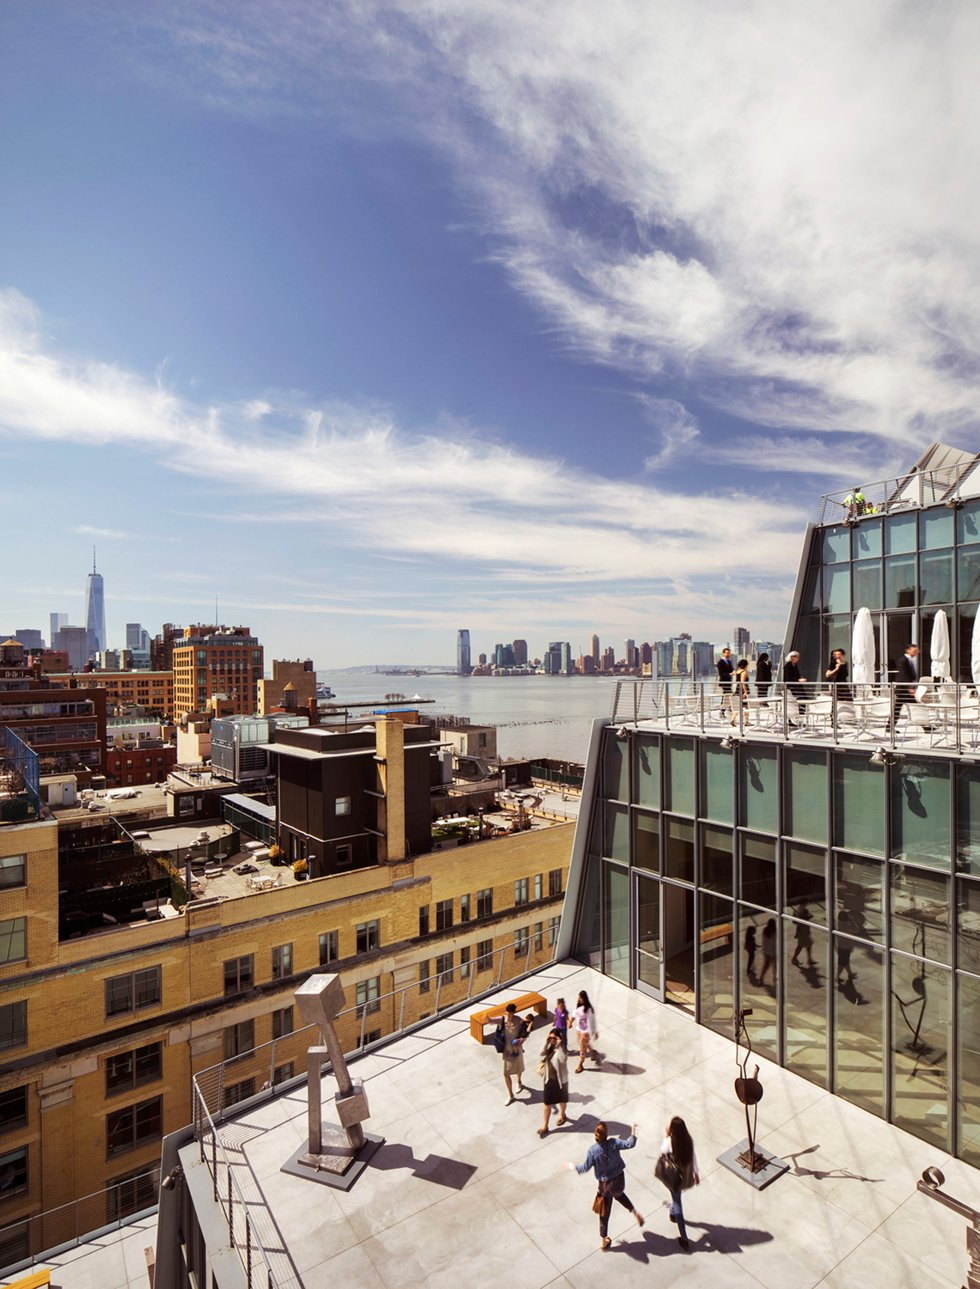 Whitney Museum of American Art. Museet har flyttet ut av lokalene i Madison Avenue og inn i en helt ny og spesielt tegnet bygning mellom High Line Park og Hudson River i Meatpacking District.